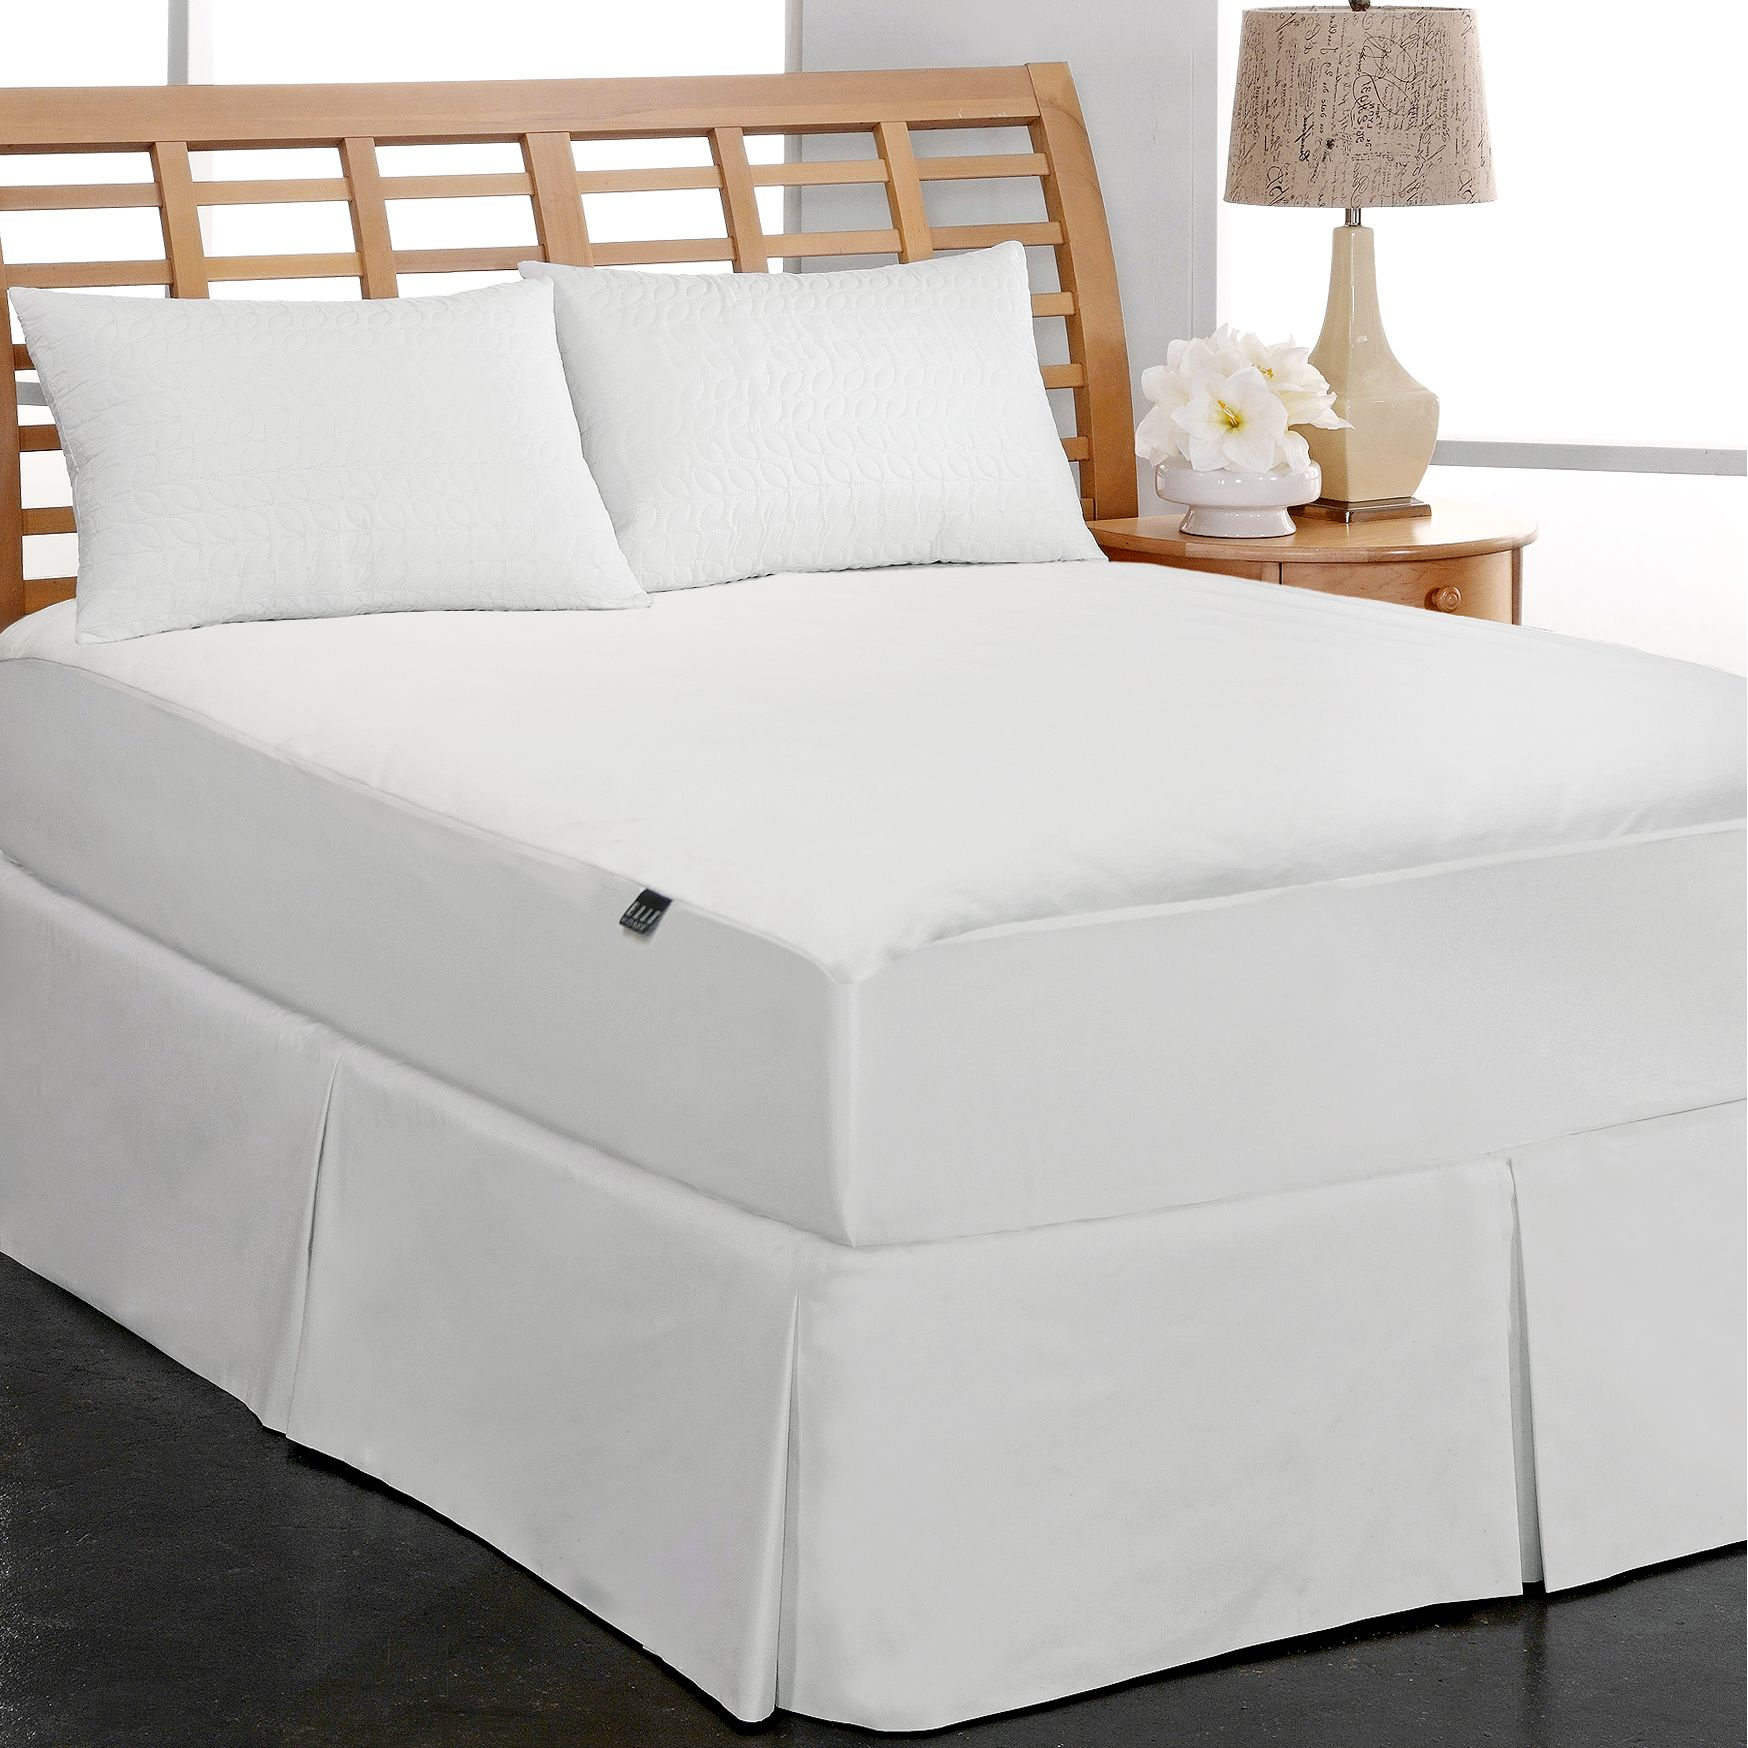 Elle Home Coral Fleece 220 GSM Waterproof Mattress Pad